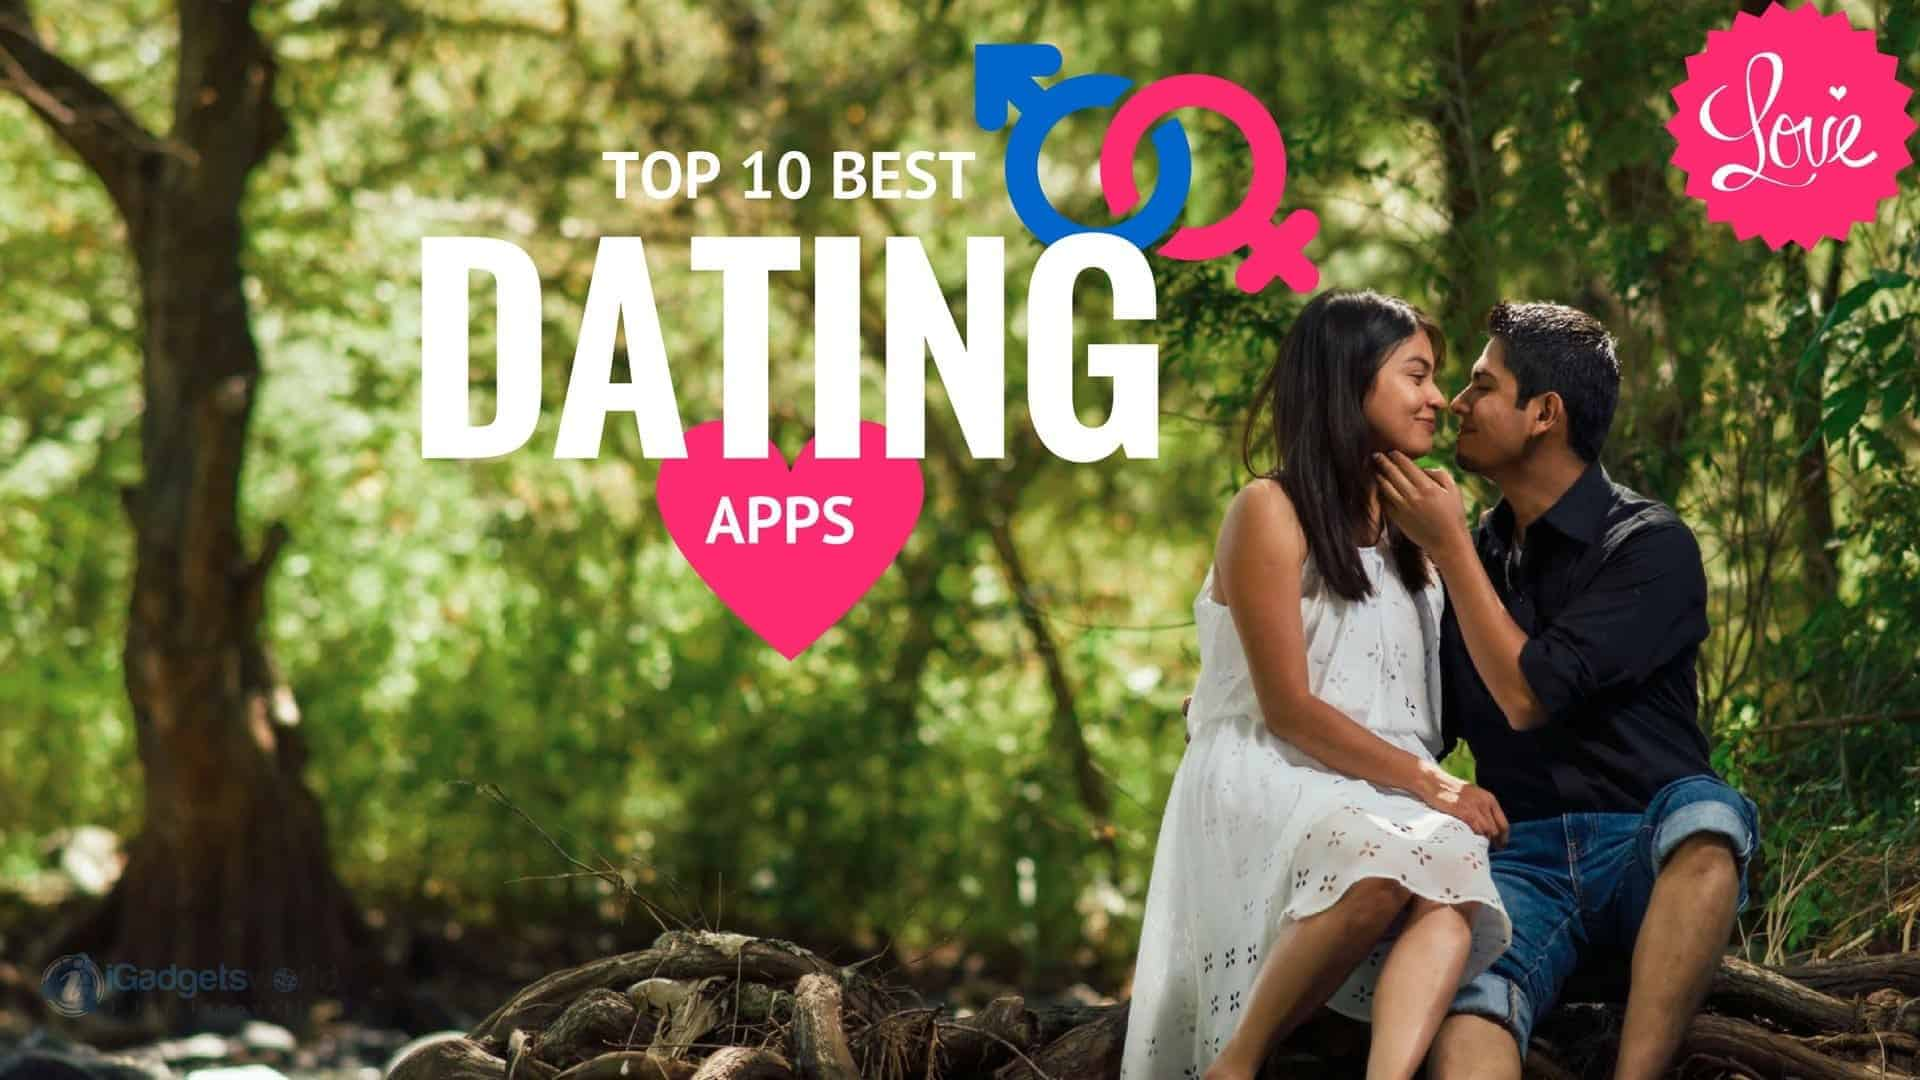 Best dating apps to use